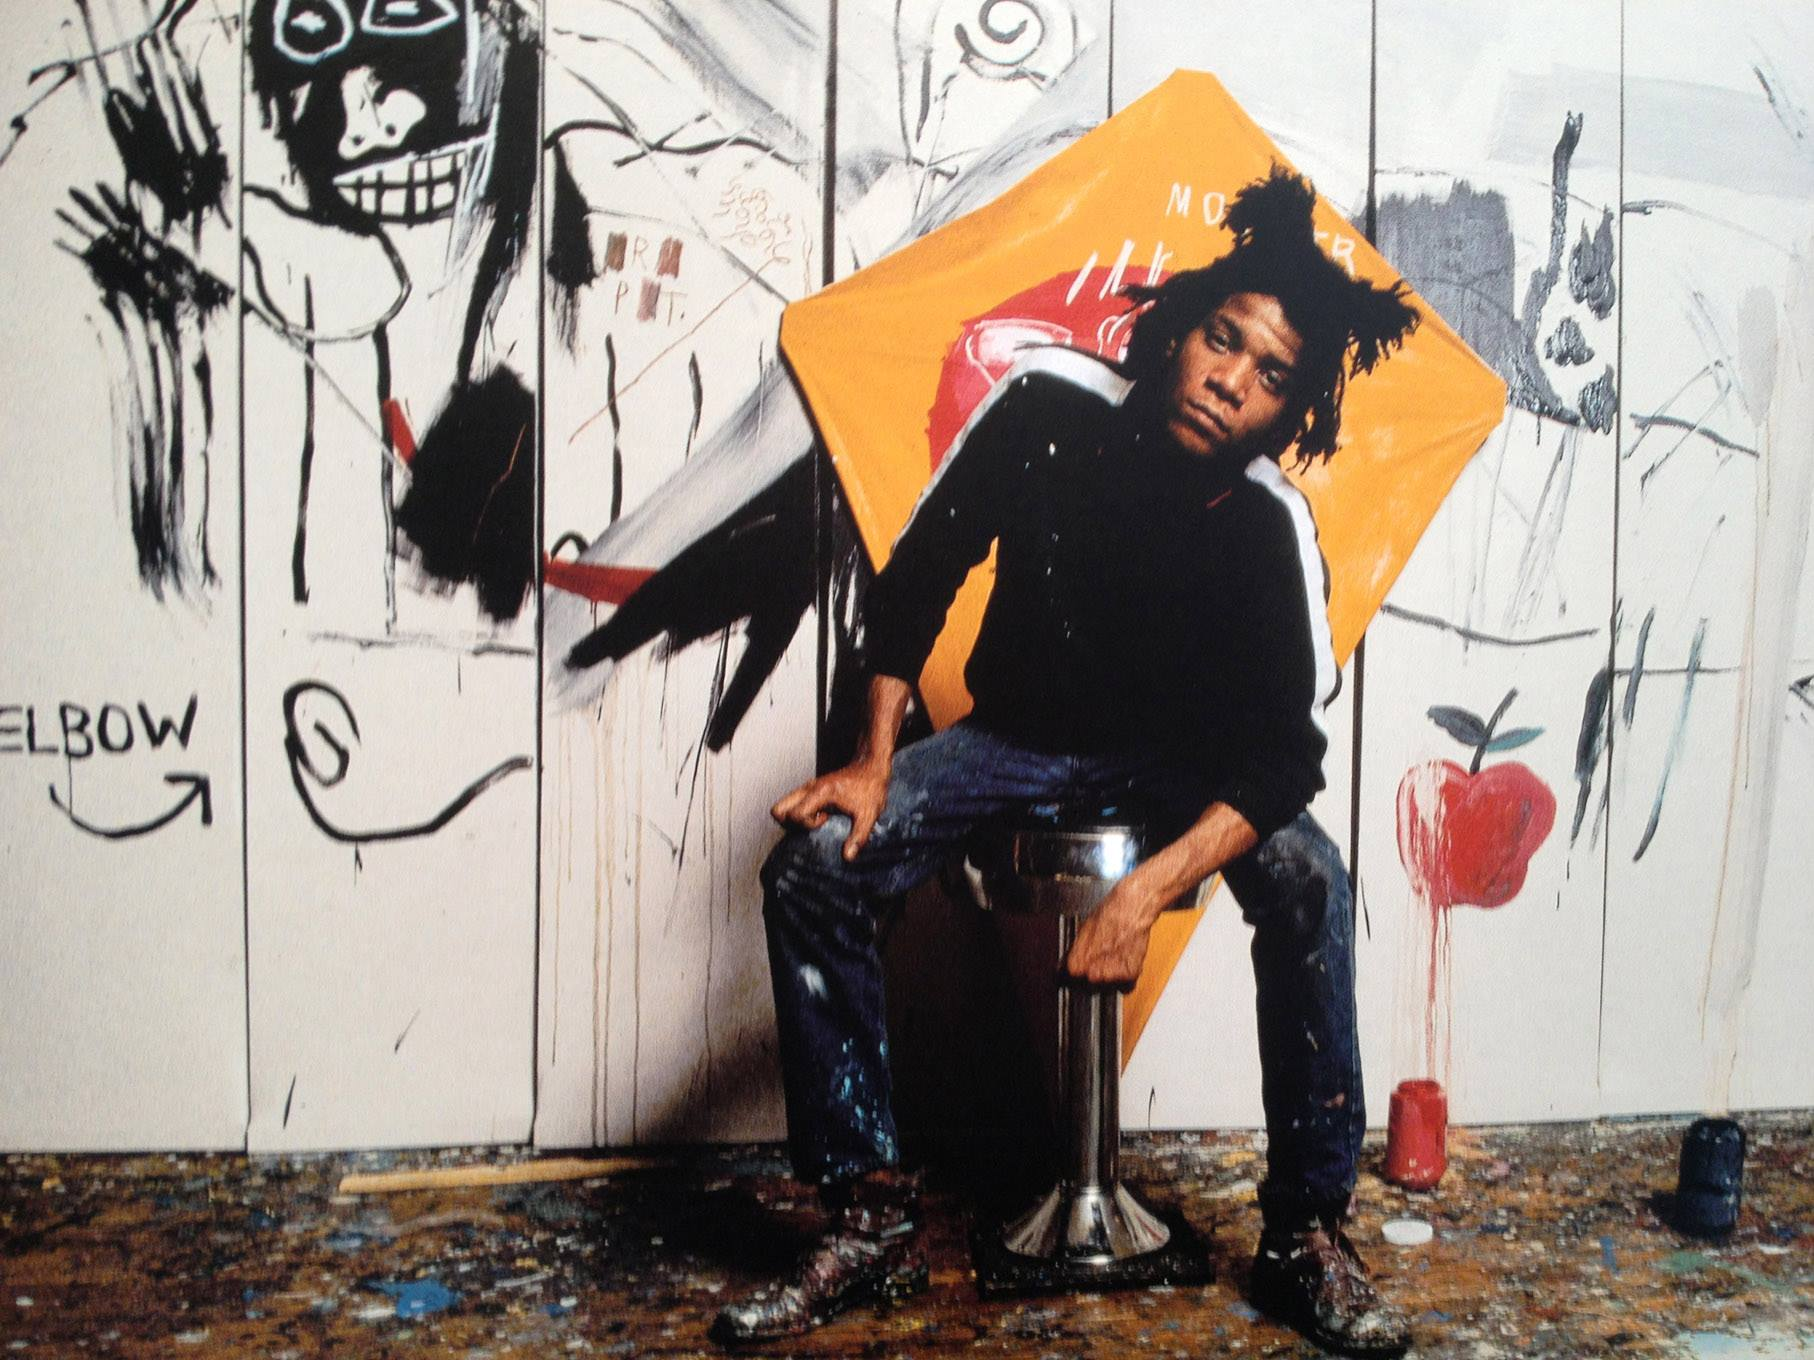 Jean michel basquiat exhibition arrives at rios ccbb this friday